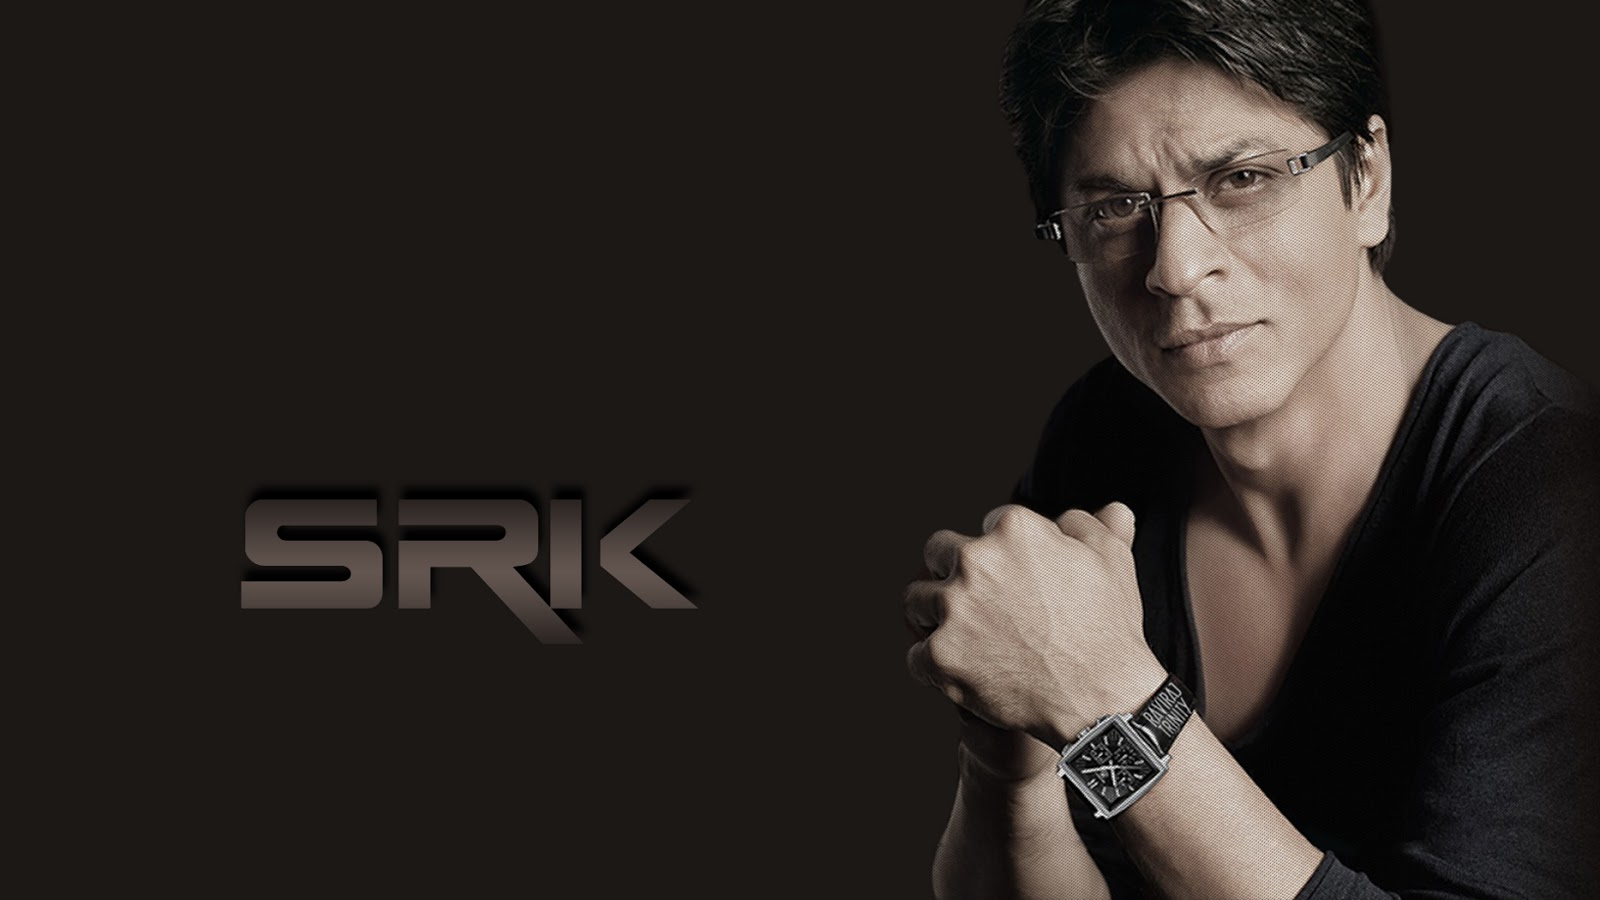 Celebrity Model Wallpaper: Shahrukh Khan HD Wallpapers 1080p